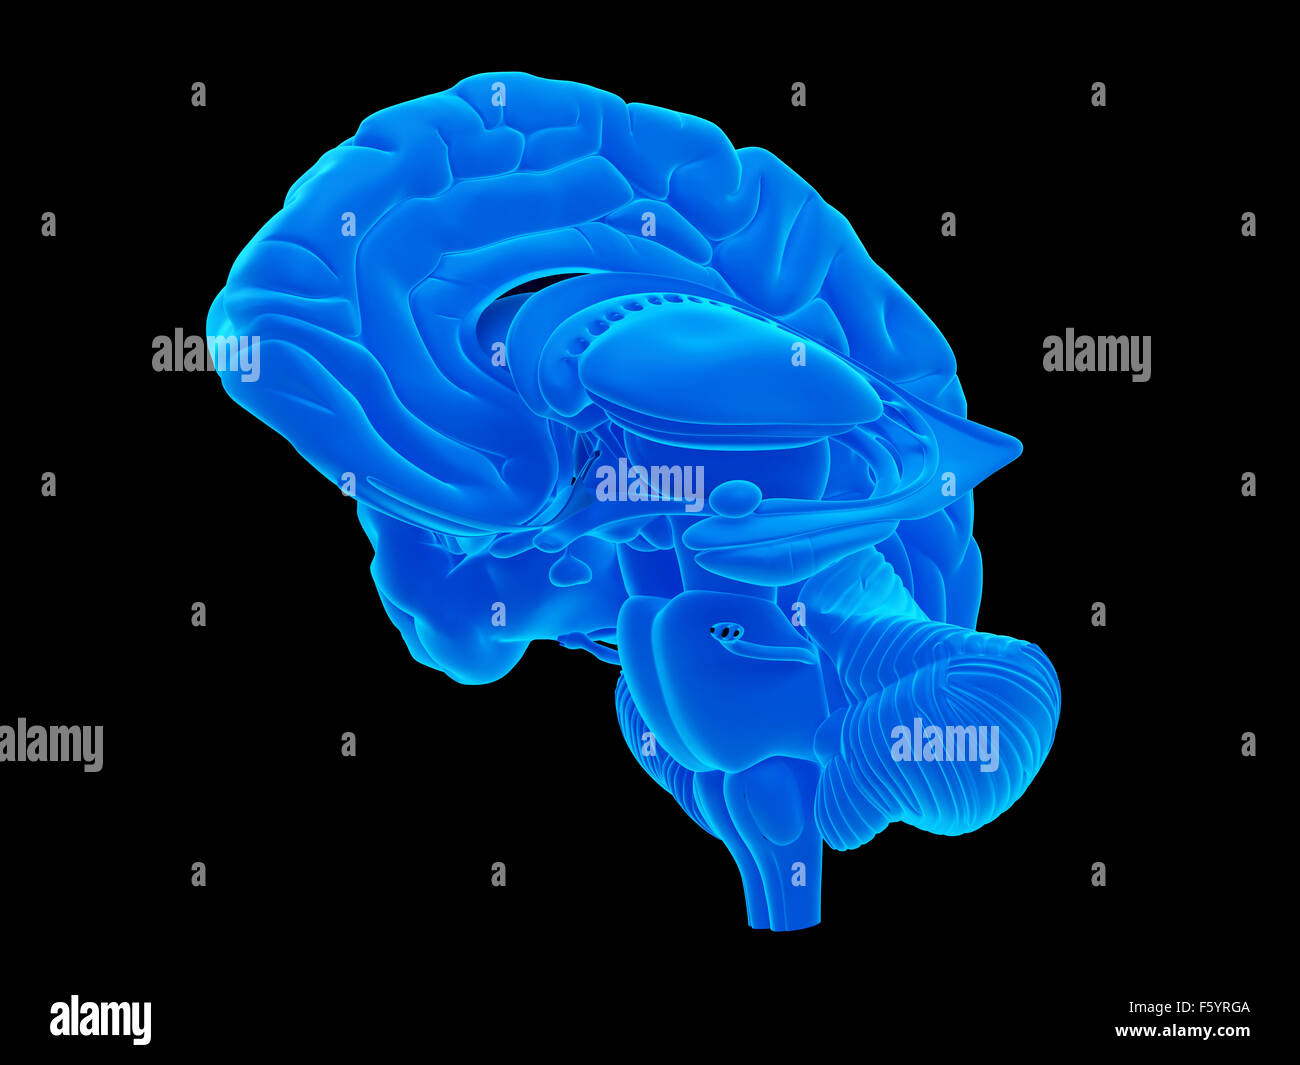 medically accurate illustration of the internal brain anatomy - Stock Image